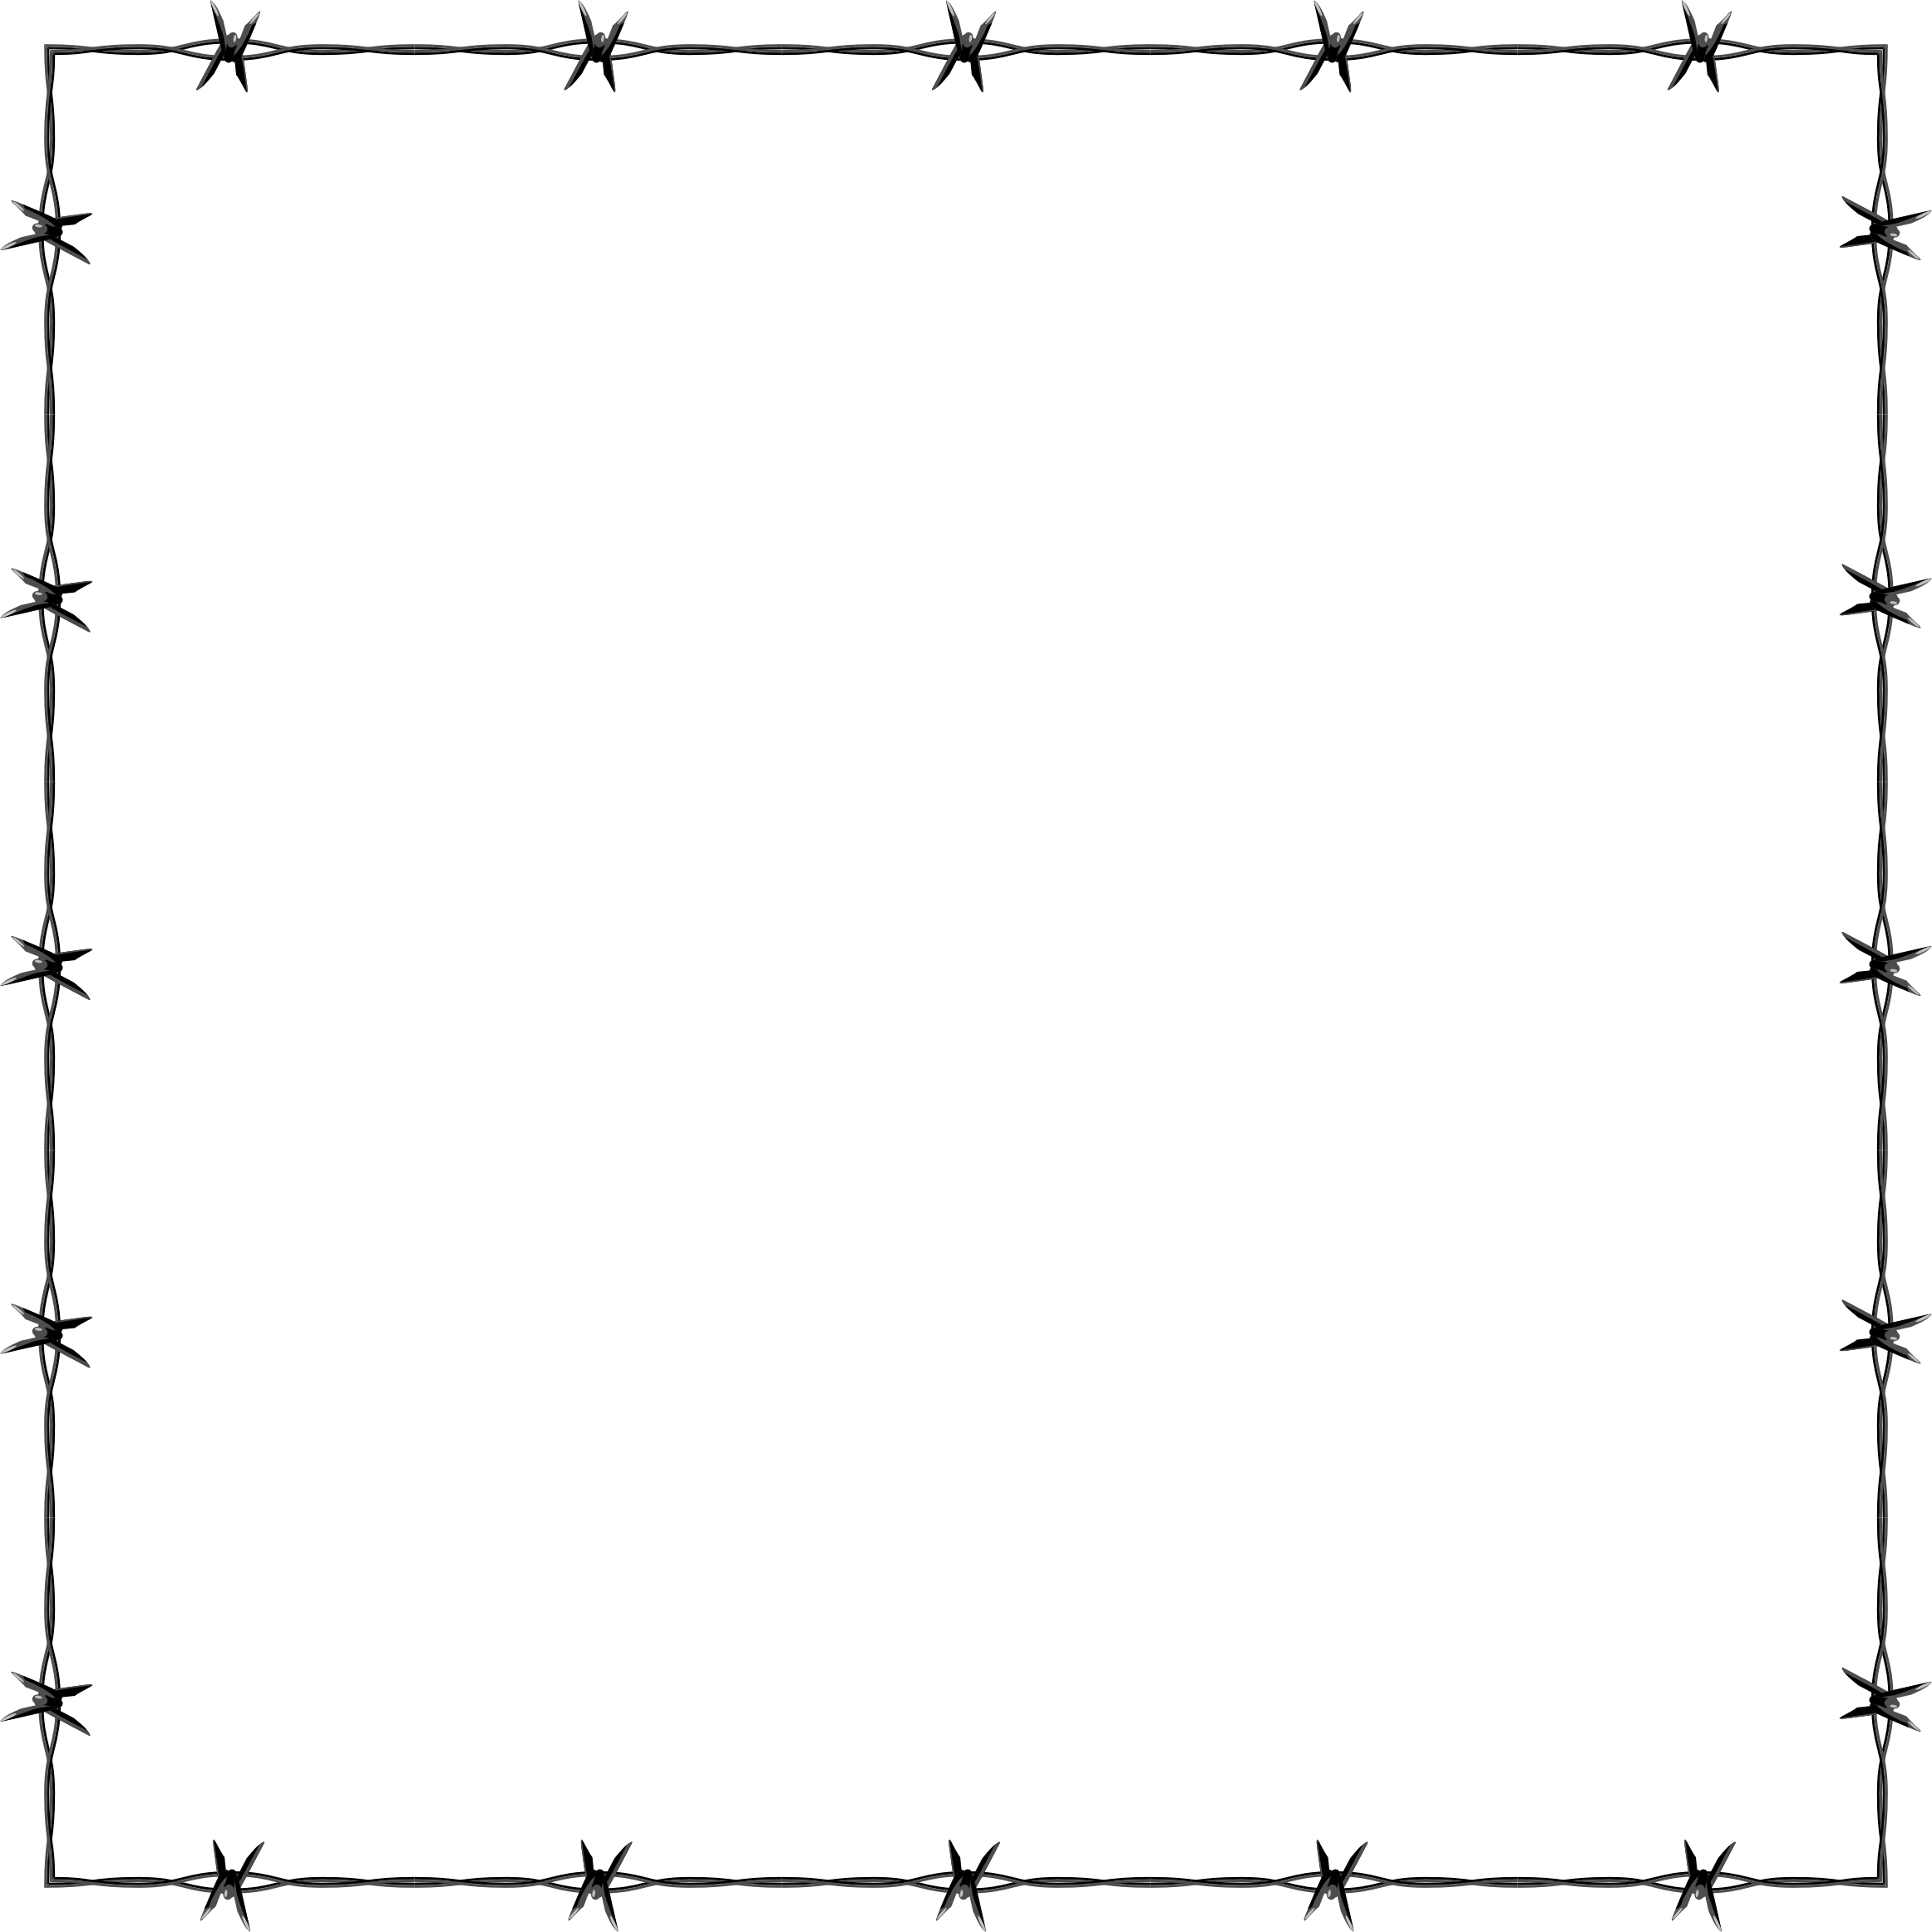 Barbed Wire clipart border Frame Border Barbed Wire Border